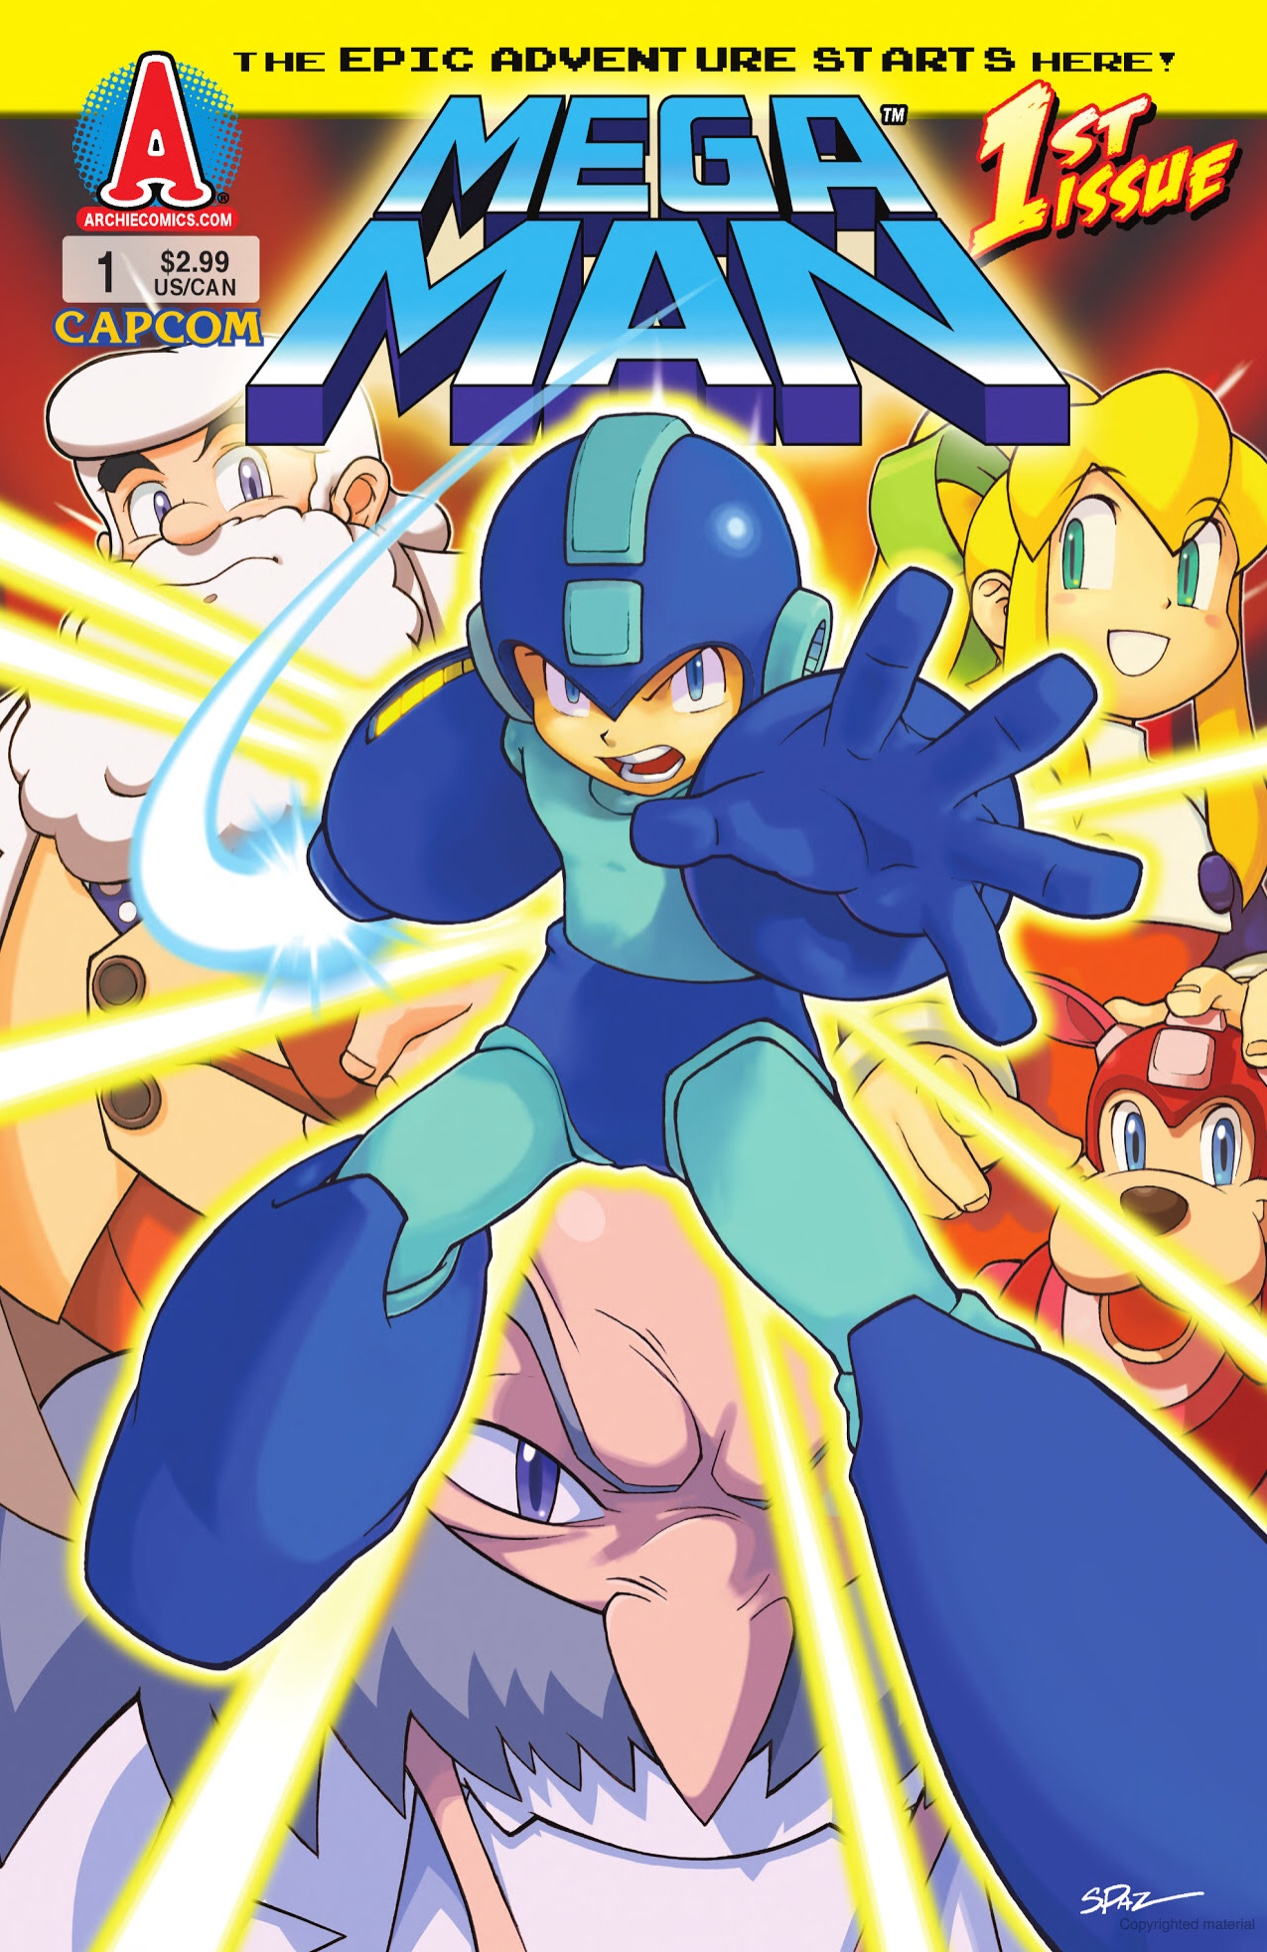 Mega Man Issue 1  Archie Comics